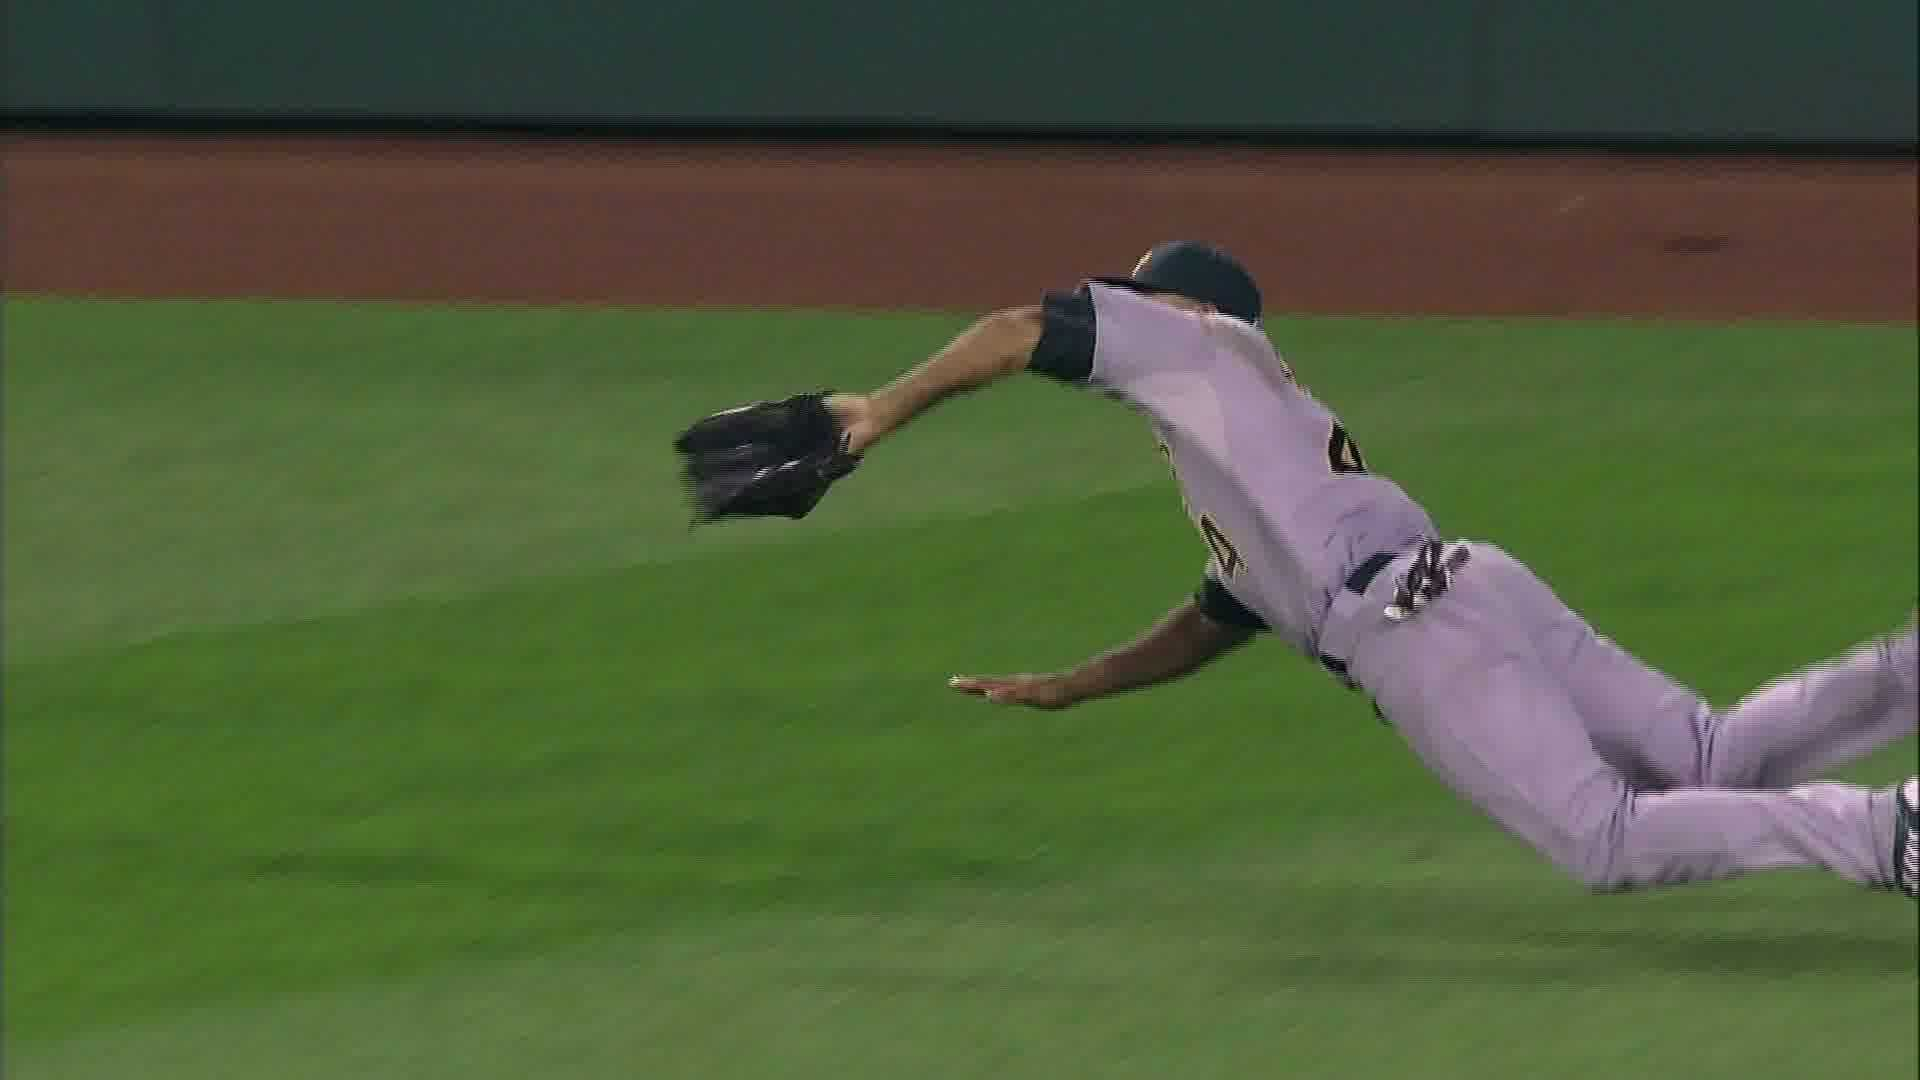 Oakland's Coco Crisp robs the Pirates' Andrew McCutchen of extra bases with a diving catch.